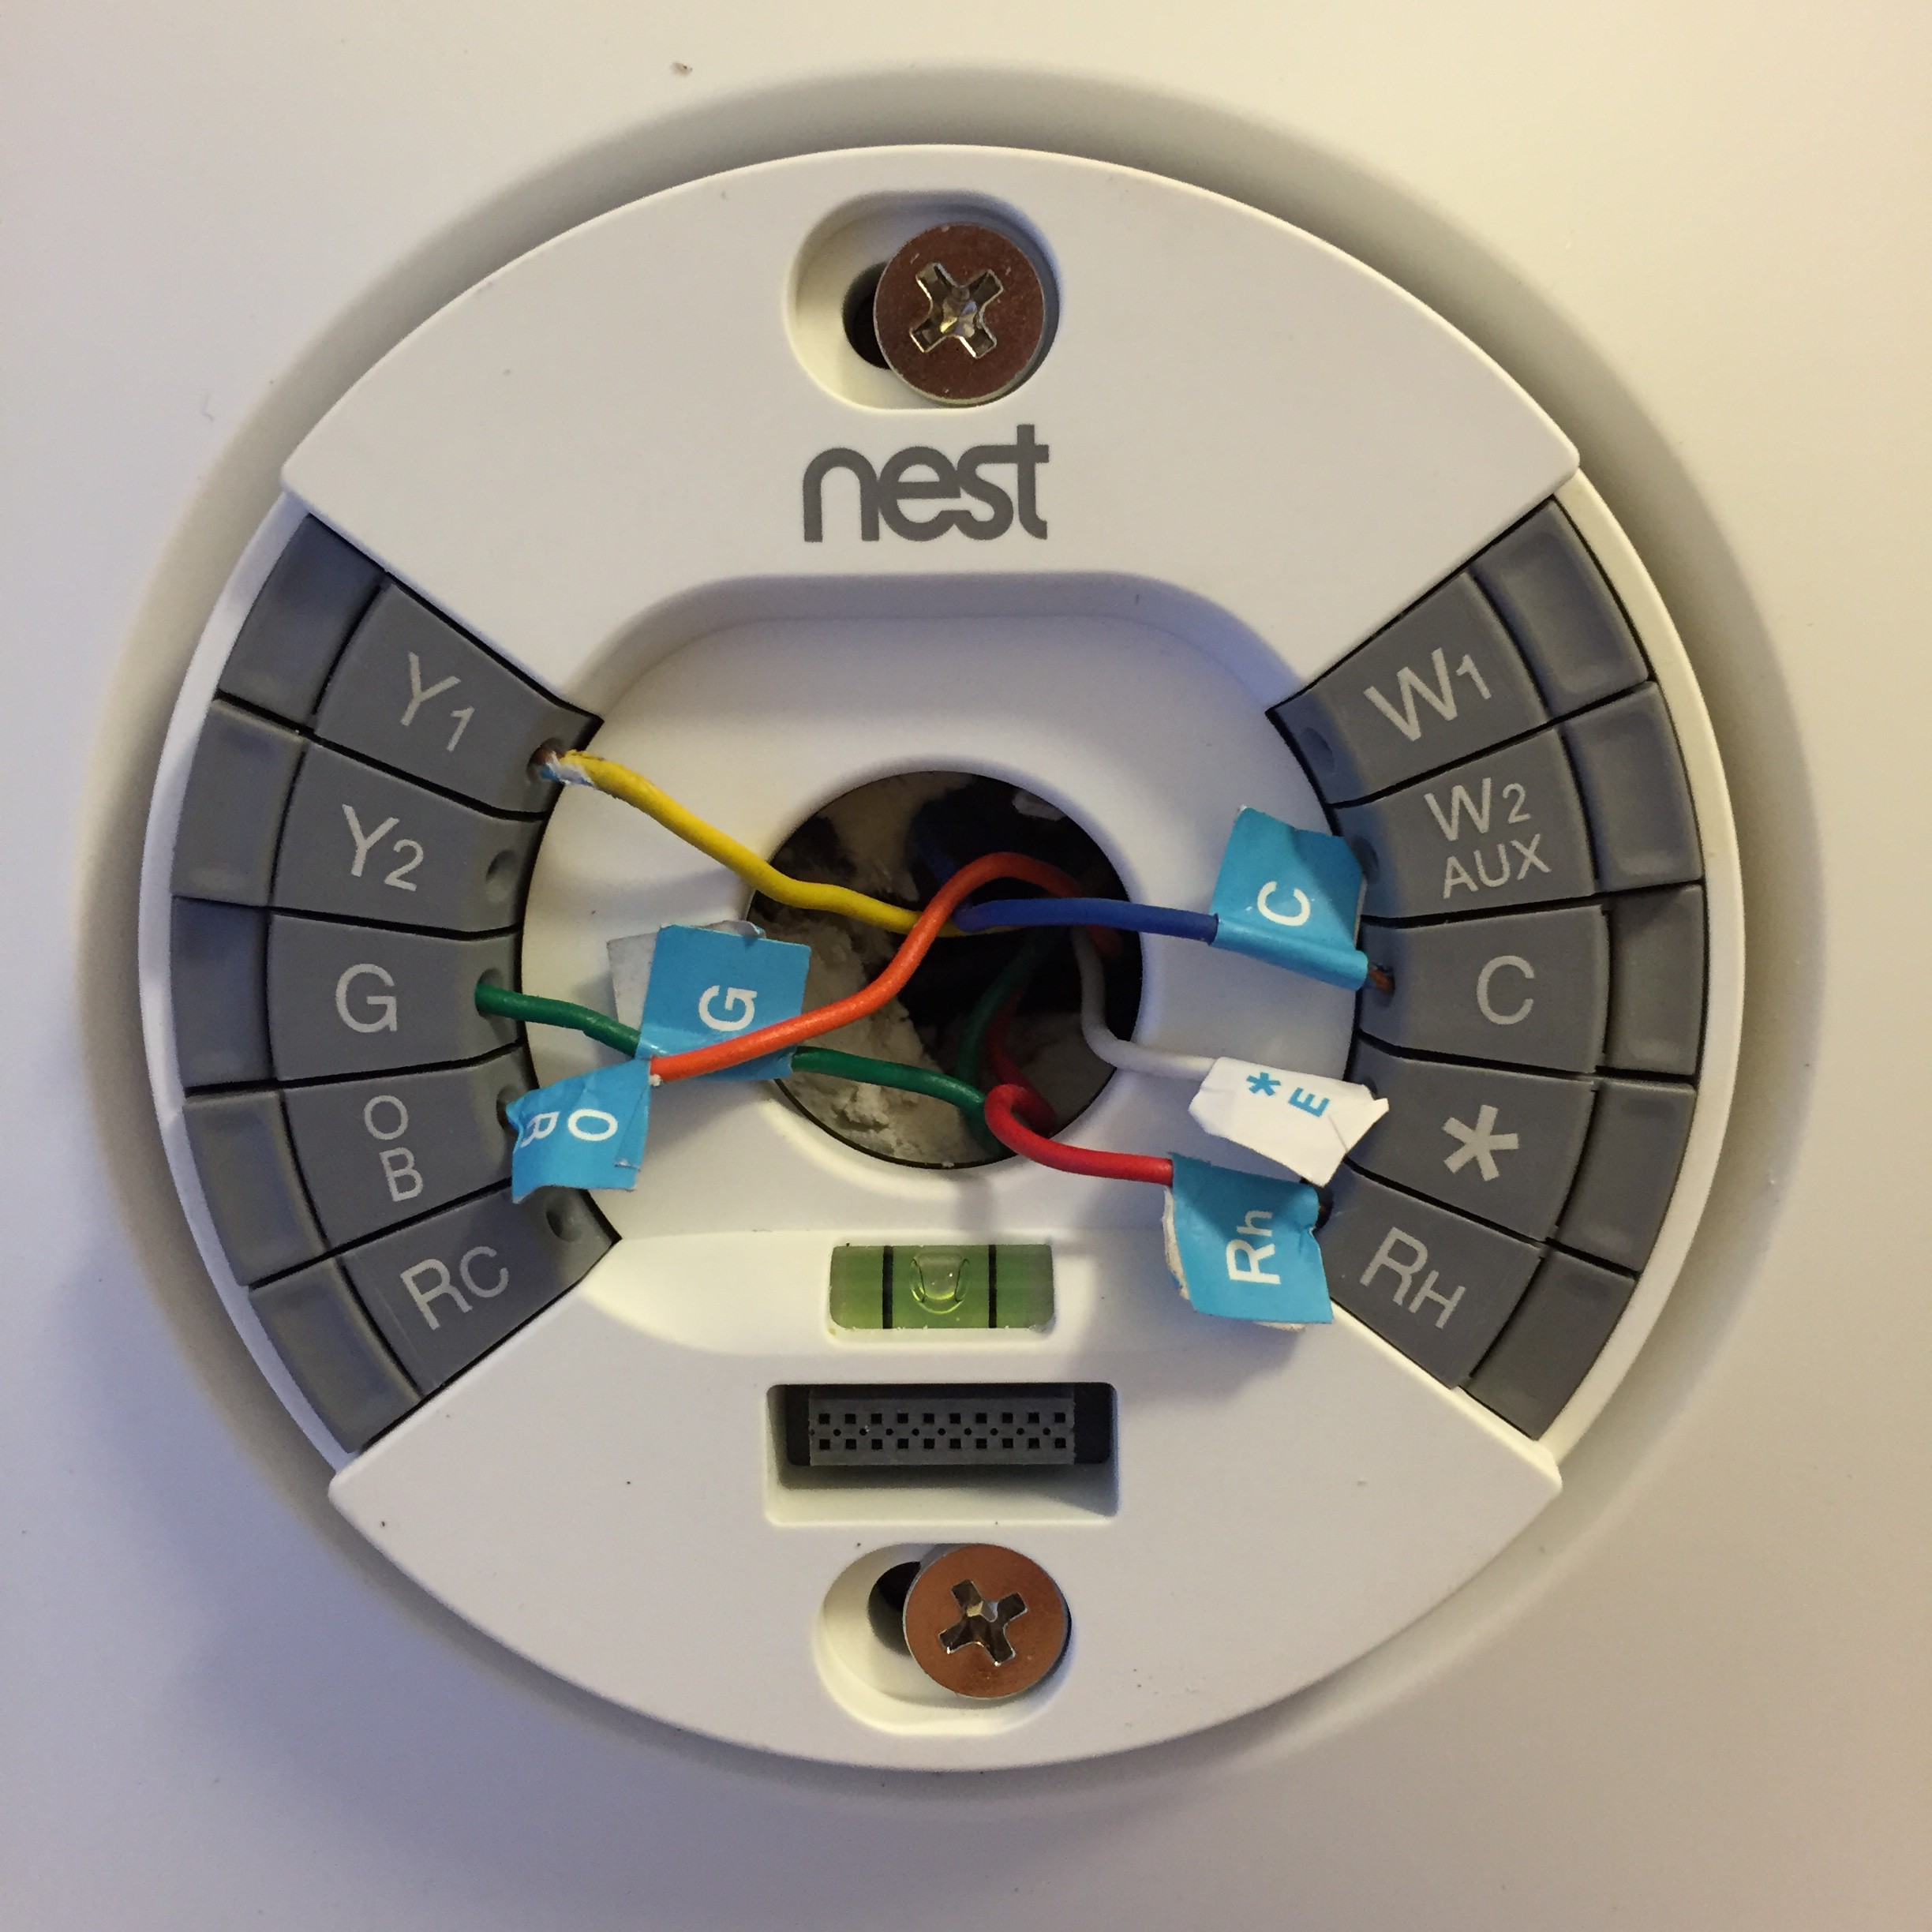 NEST Back Plate e1433878189266 the self learning nest thermostat comes to the sauser home! nest thermostat heat pump wiring diagram at eliteediting.co